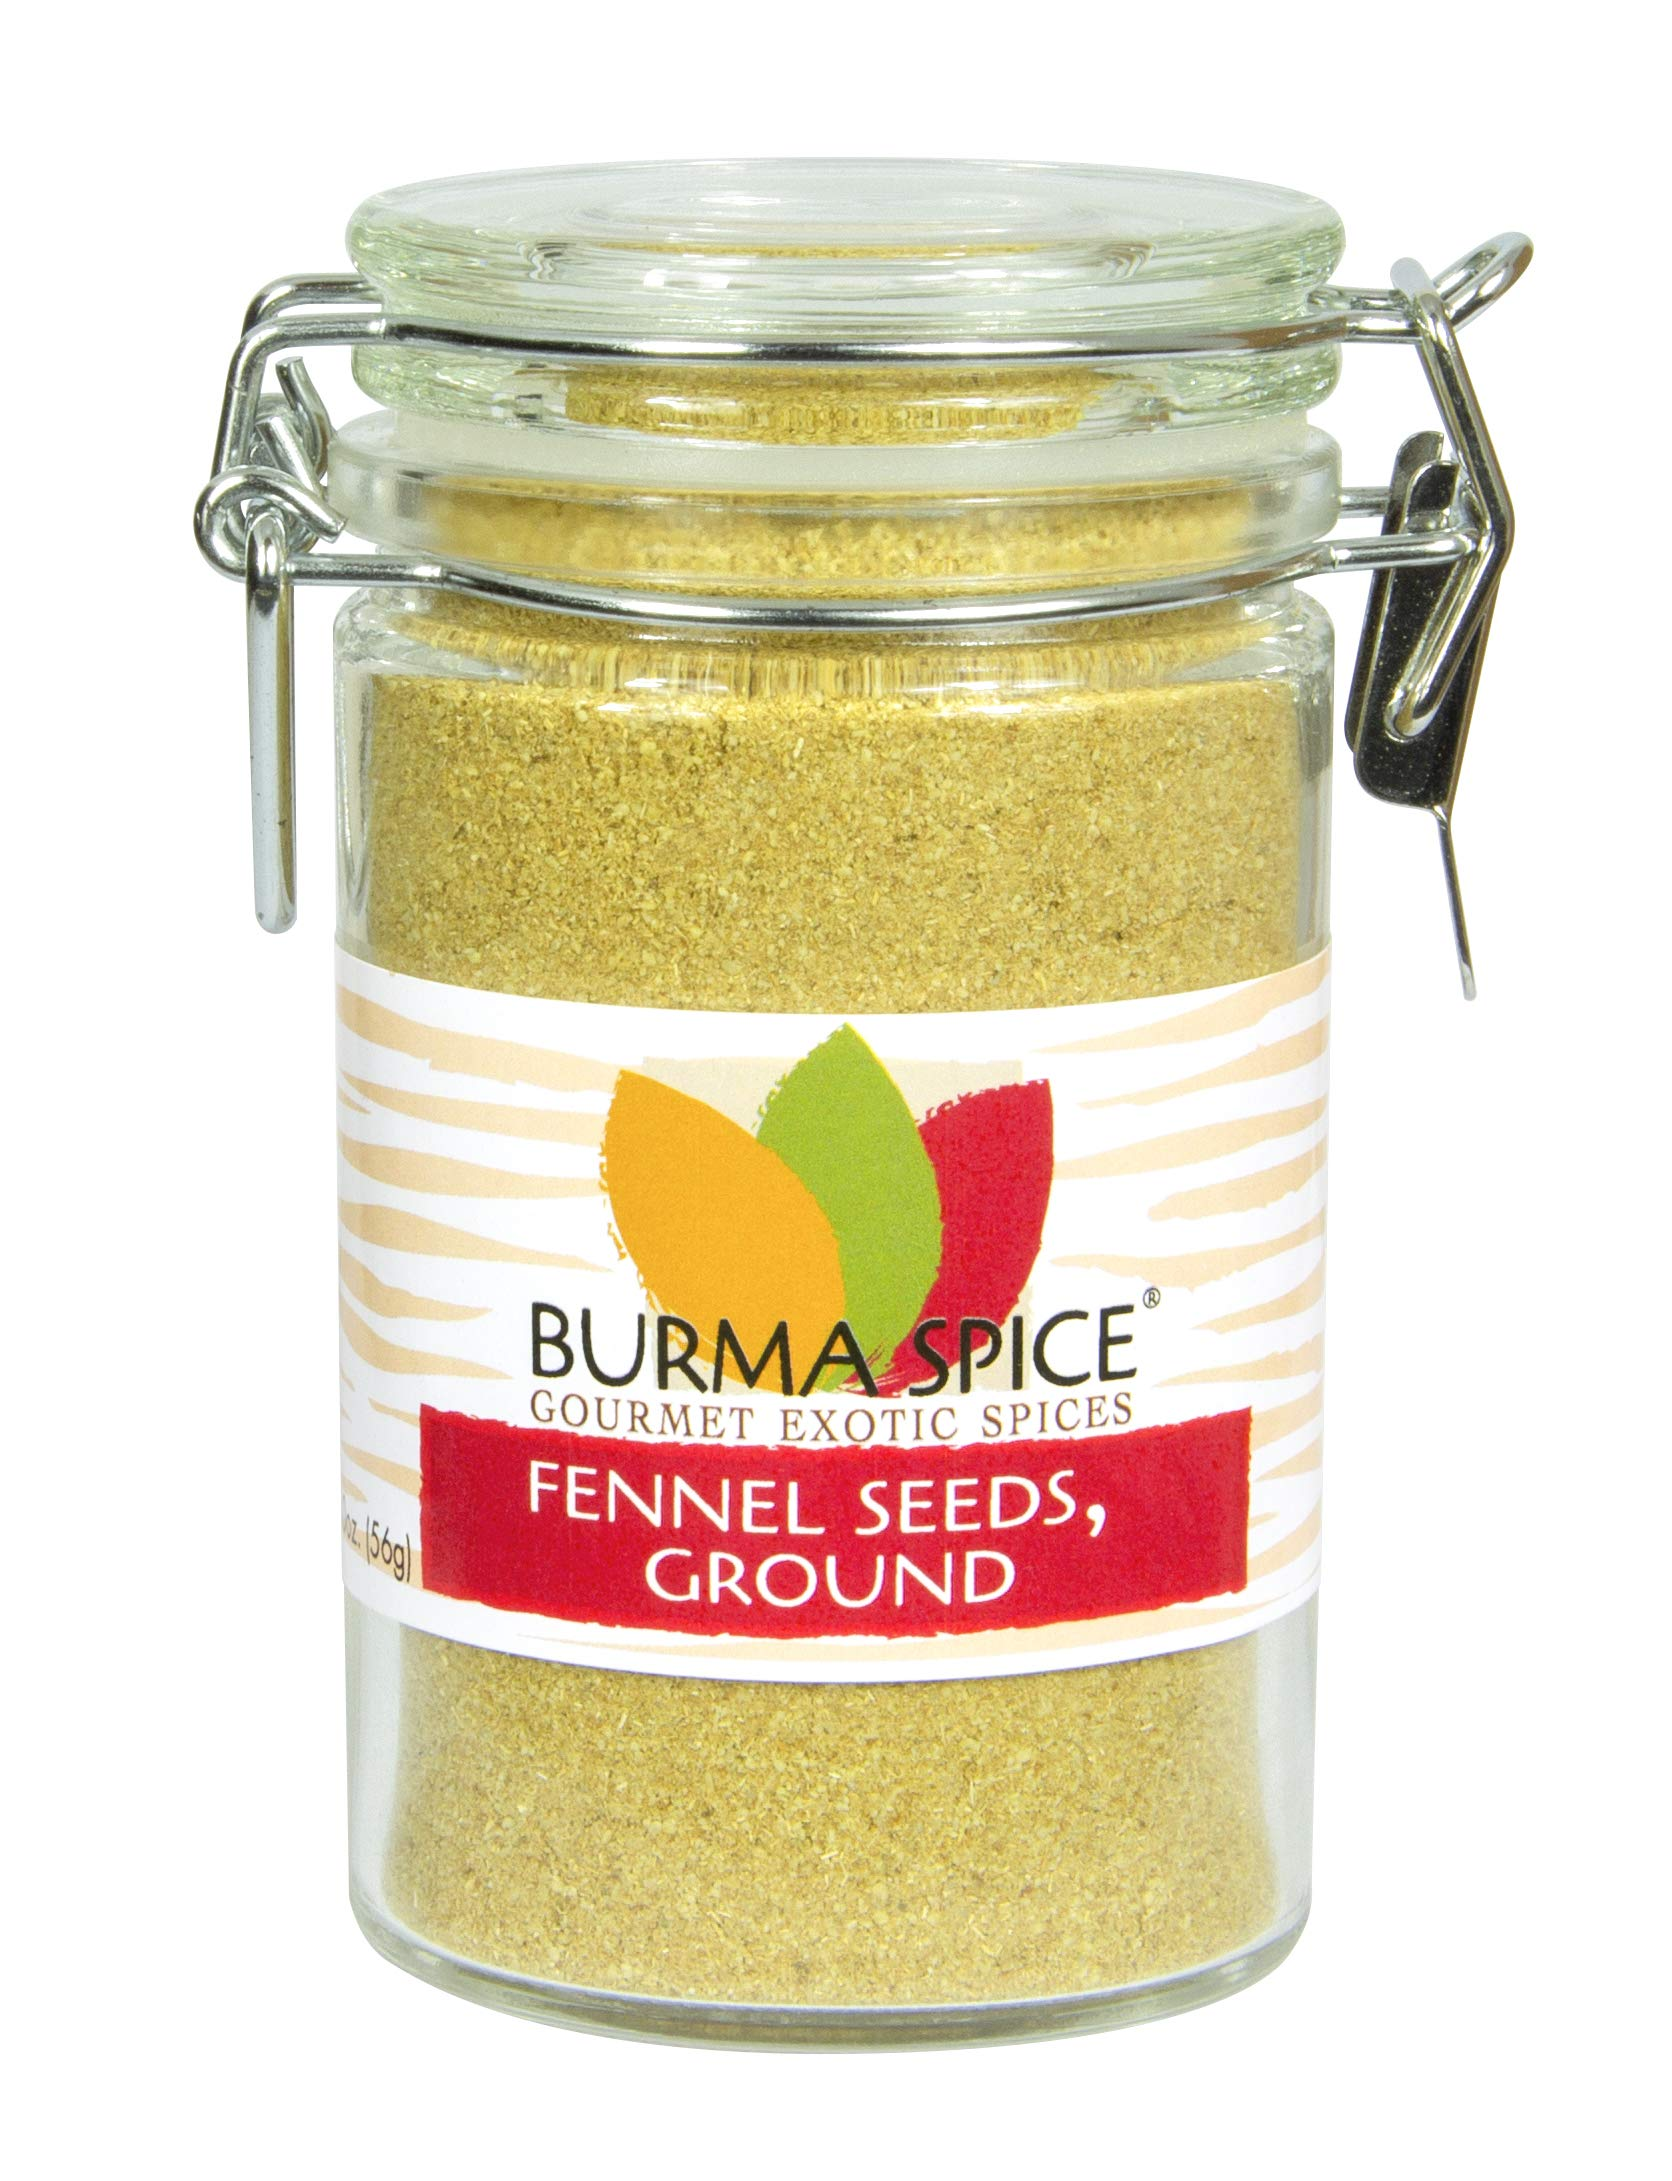 Ground Fennel Seed (2 oz.)